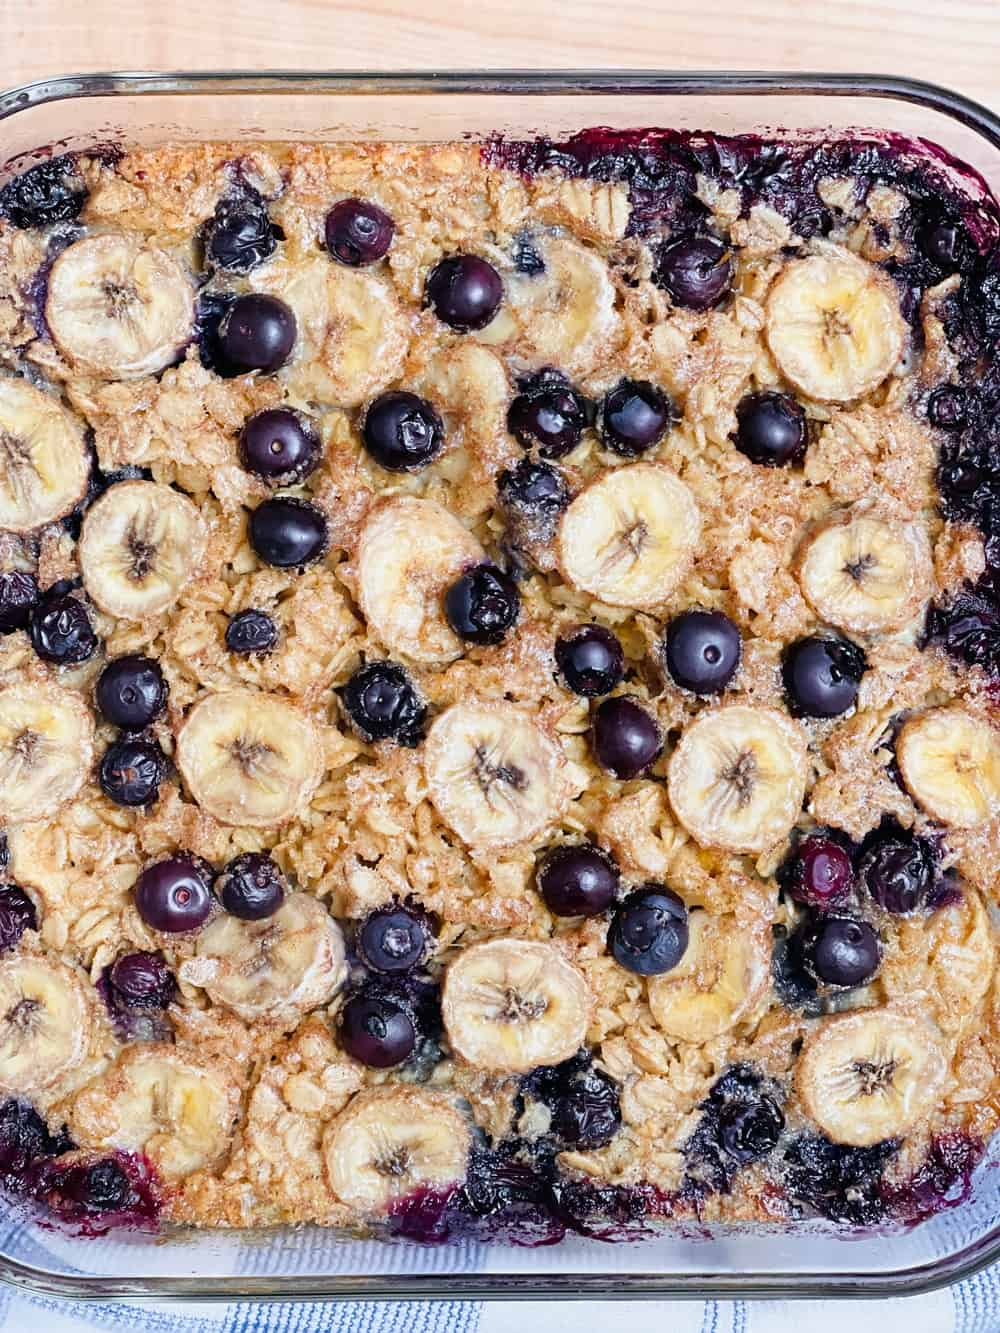 TikTok Baked Oats Recipe made with bananas and blueberries